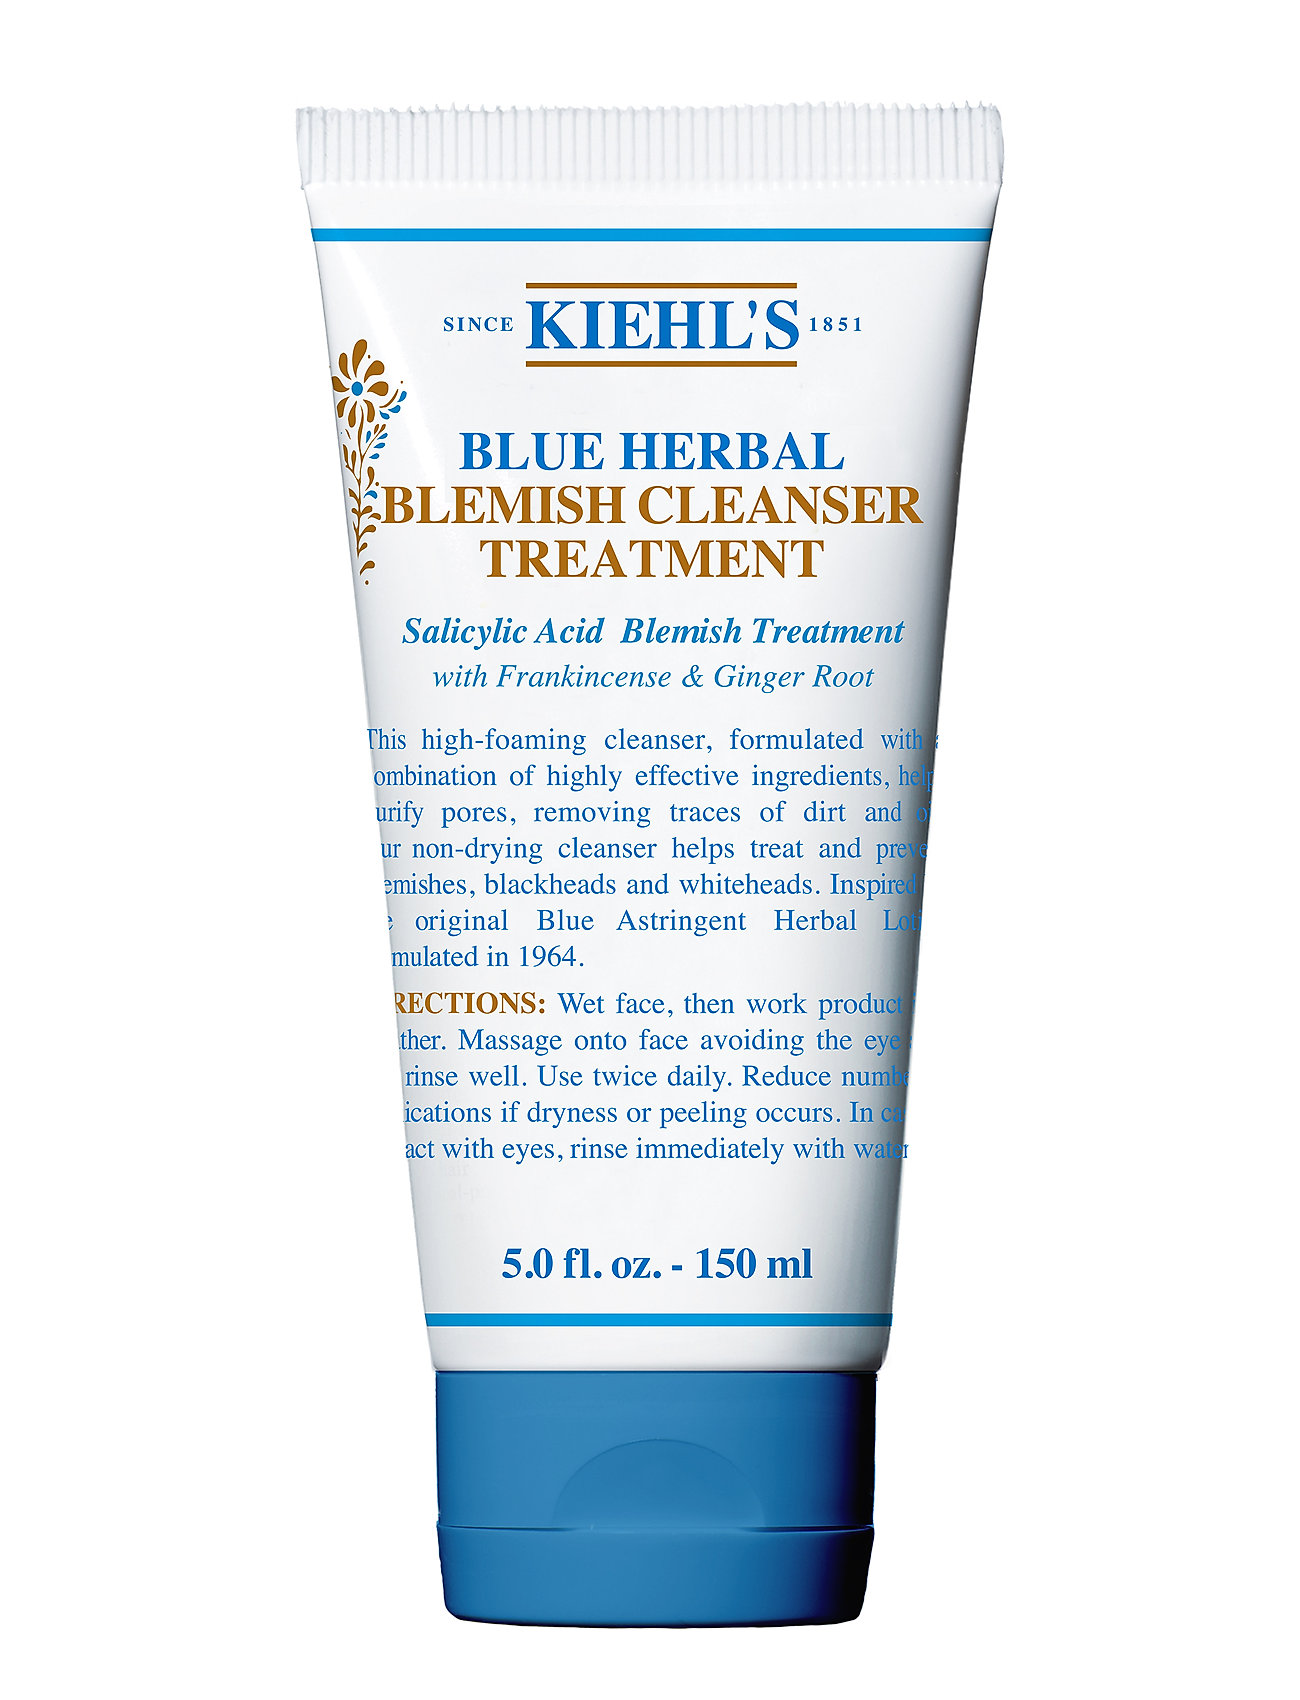 Image of Blue Herbal Blemish Cleanser Treatment Ansigtsvask Nude Kiehl's (3248217359)